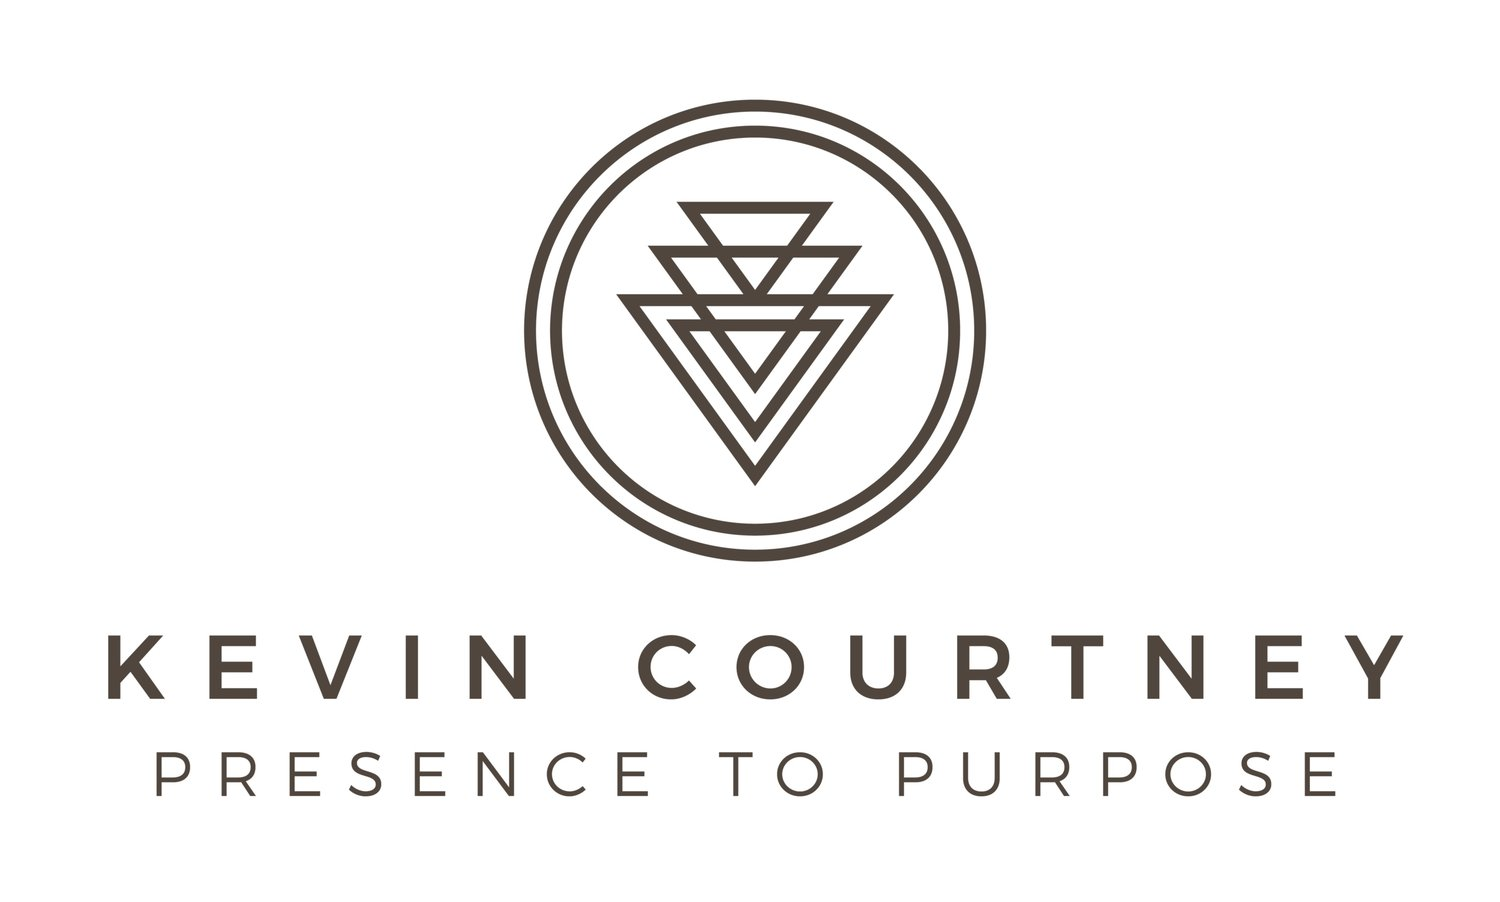 Kevin Courtney